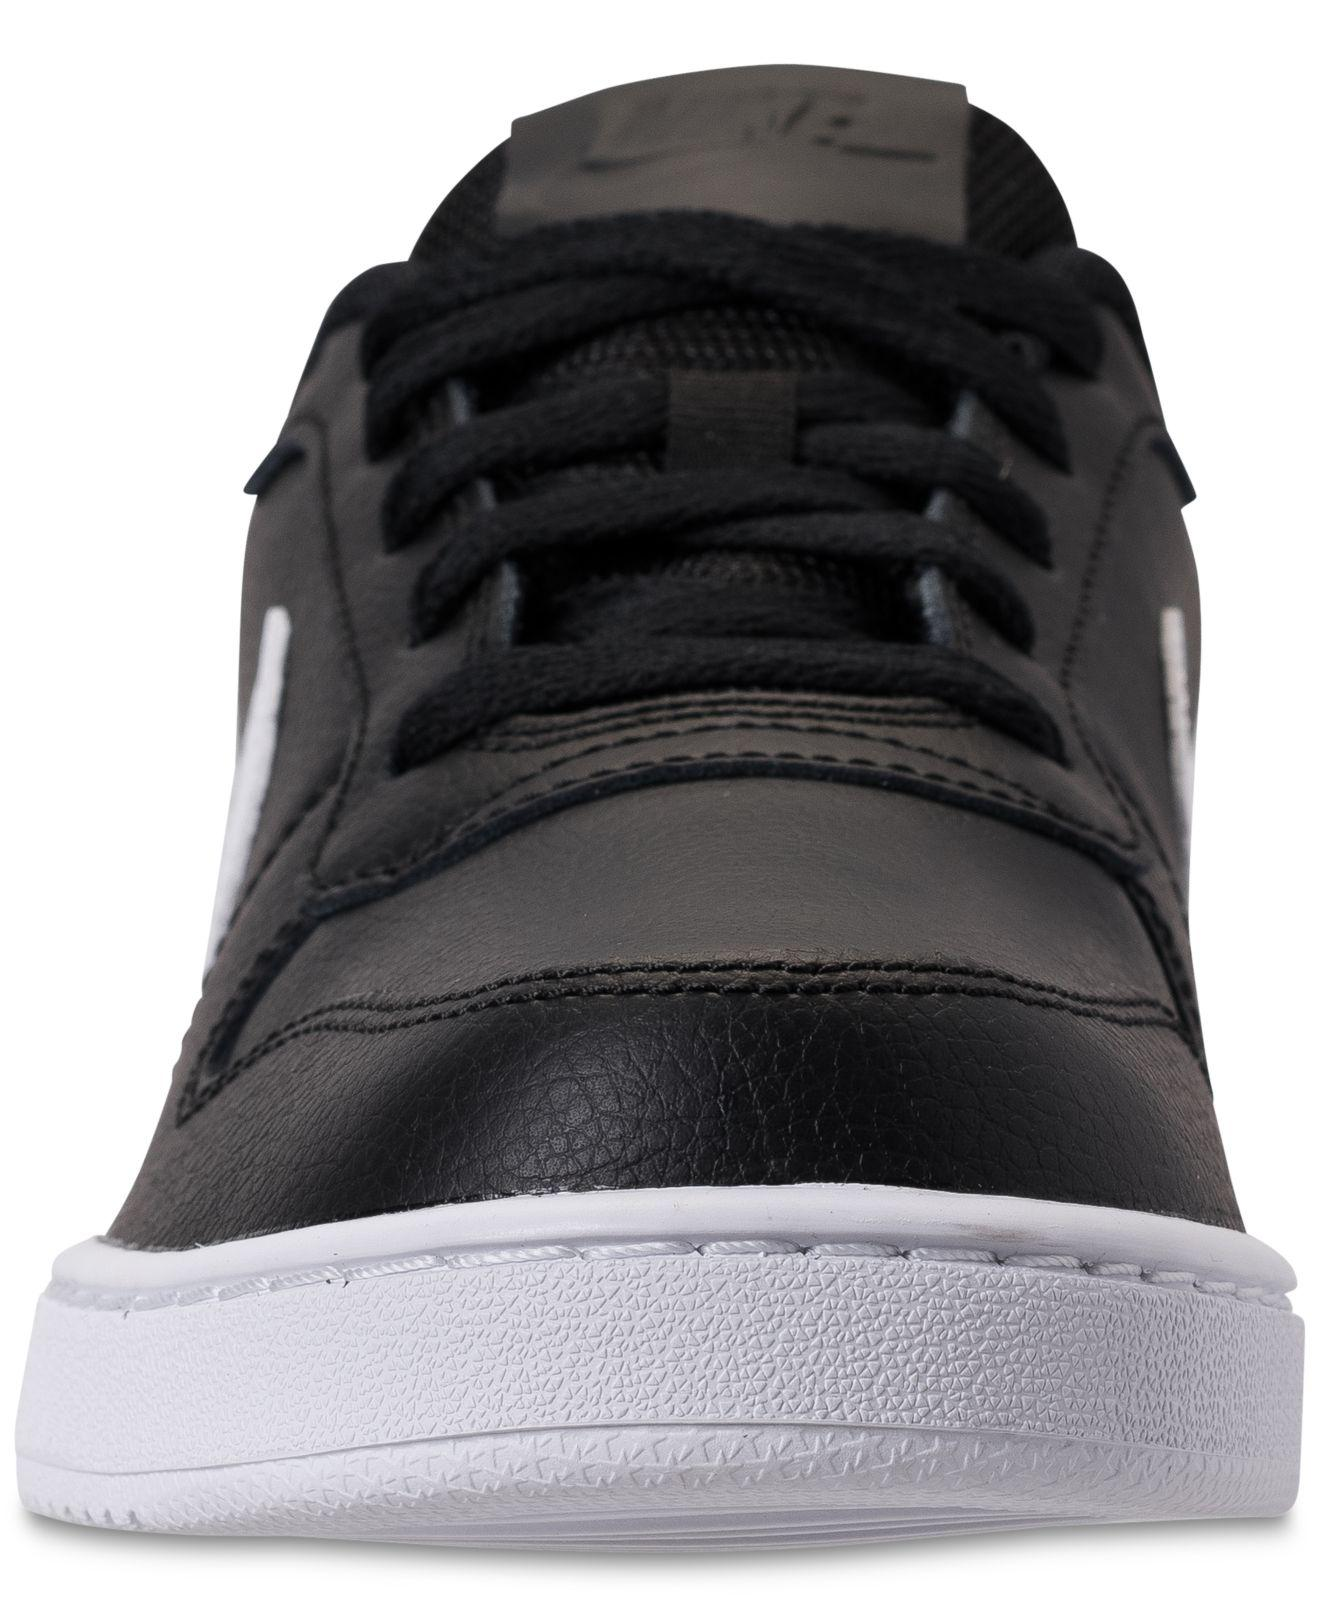 1a040005950 Nike - Black Ebernon Low Casual Sneakers From Finish Line for Men - Lyst.  View fullscreen